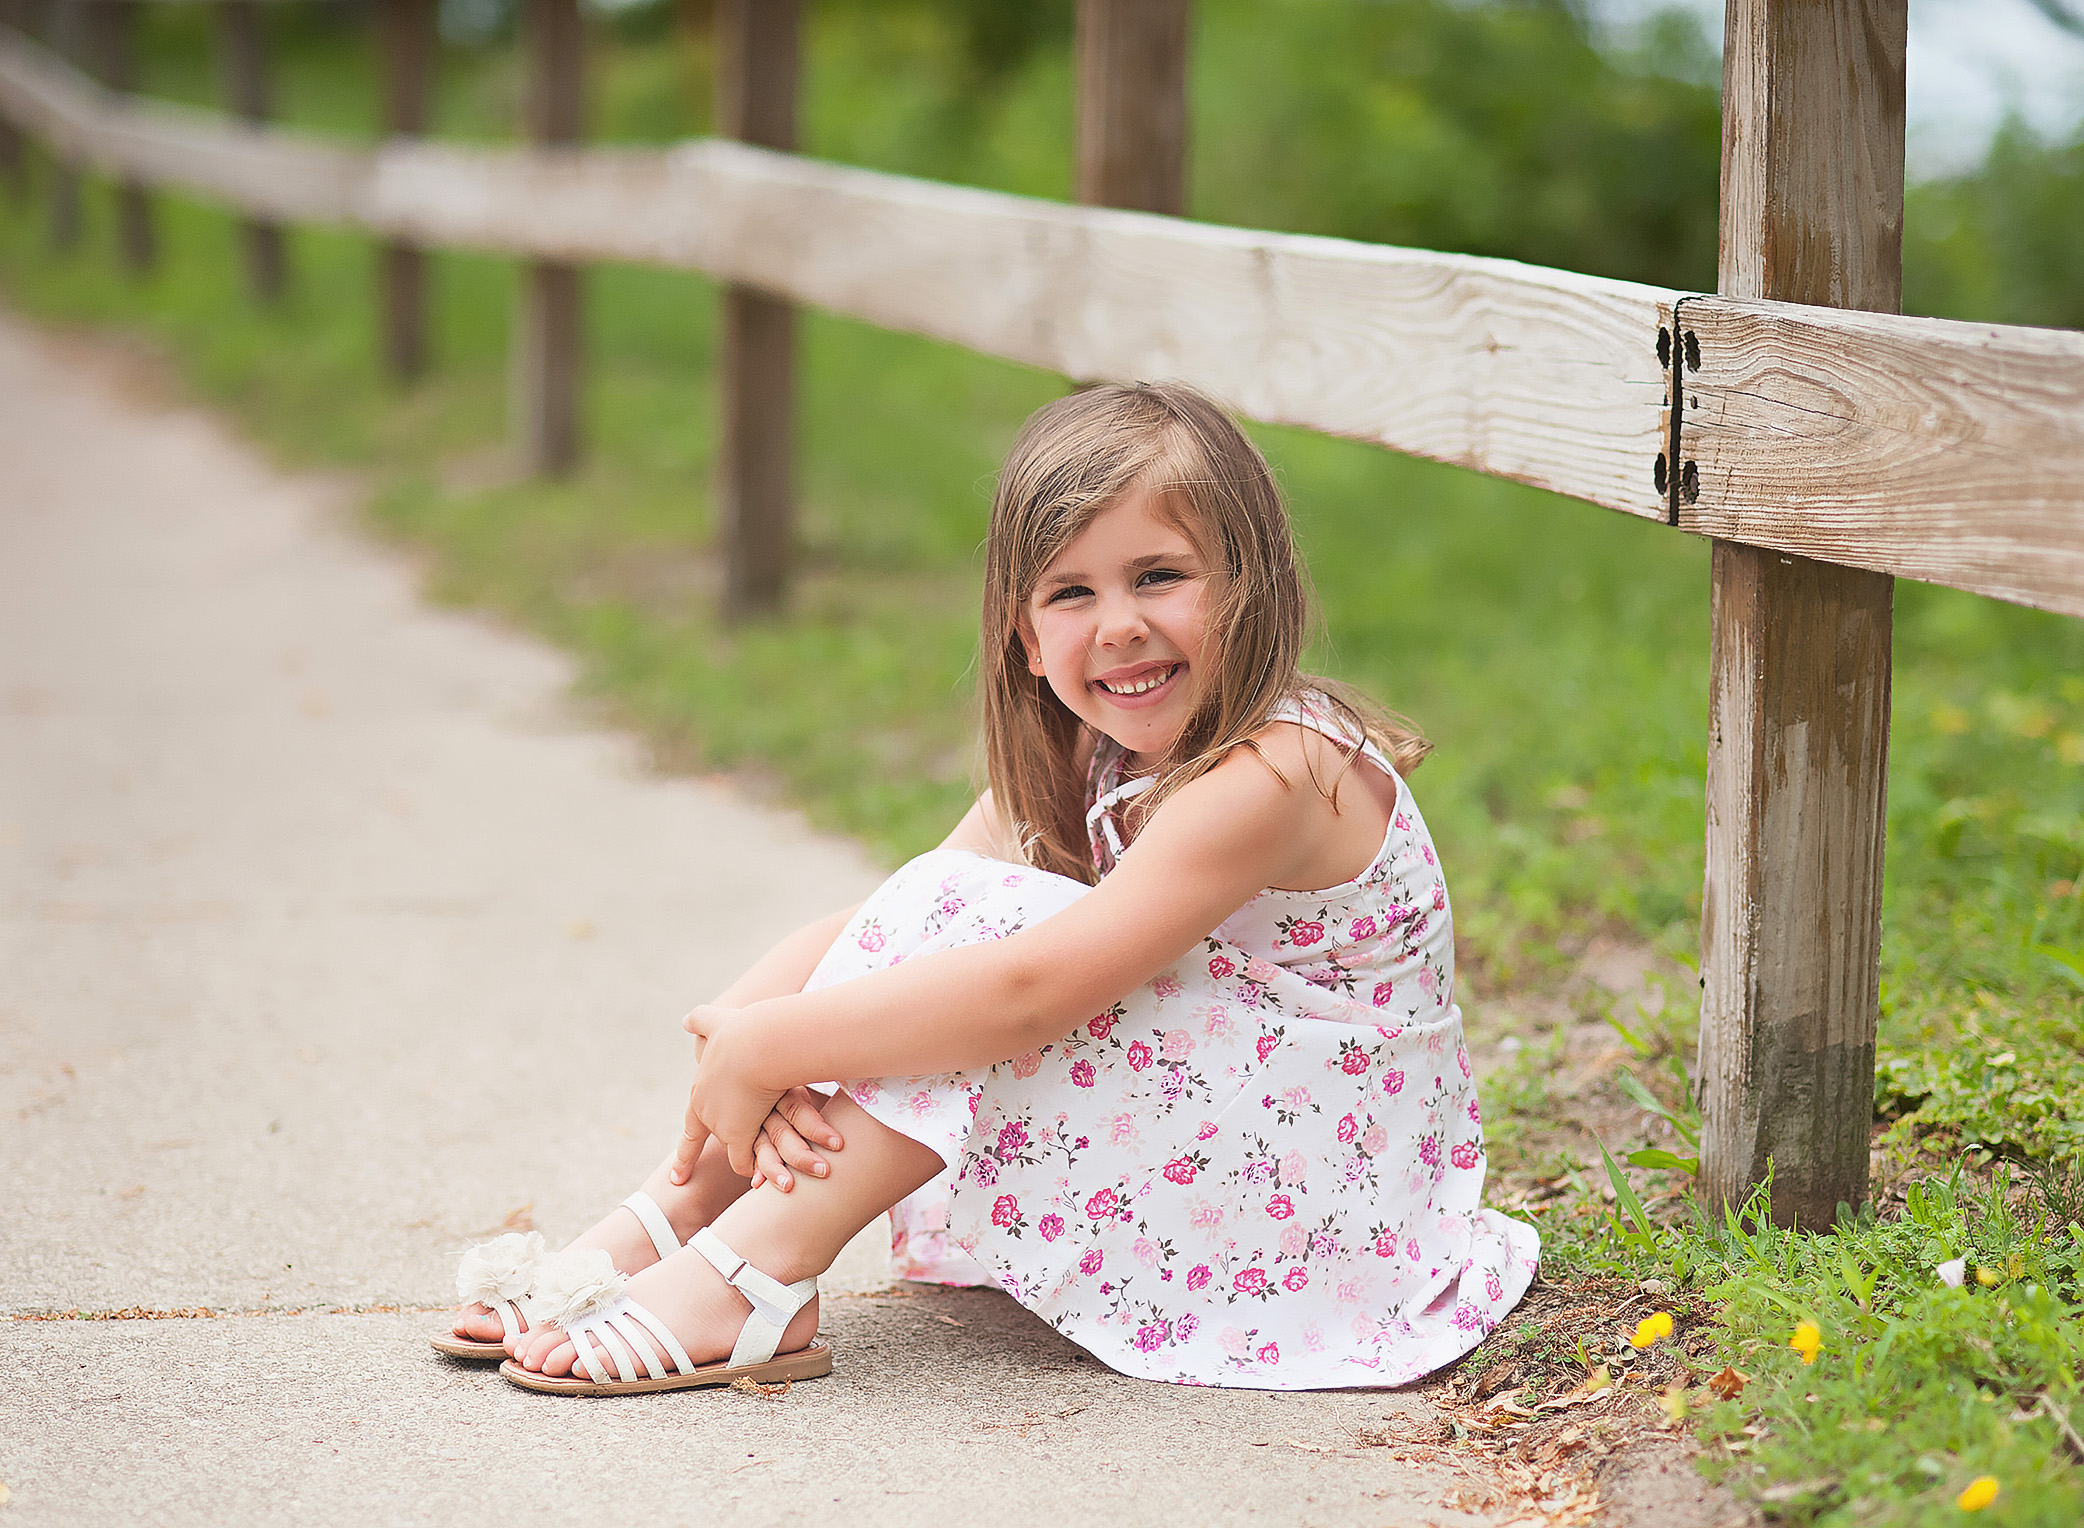 little girl sitting by a wooden fence